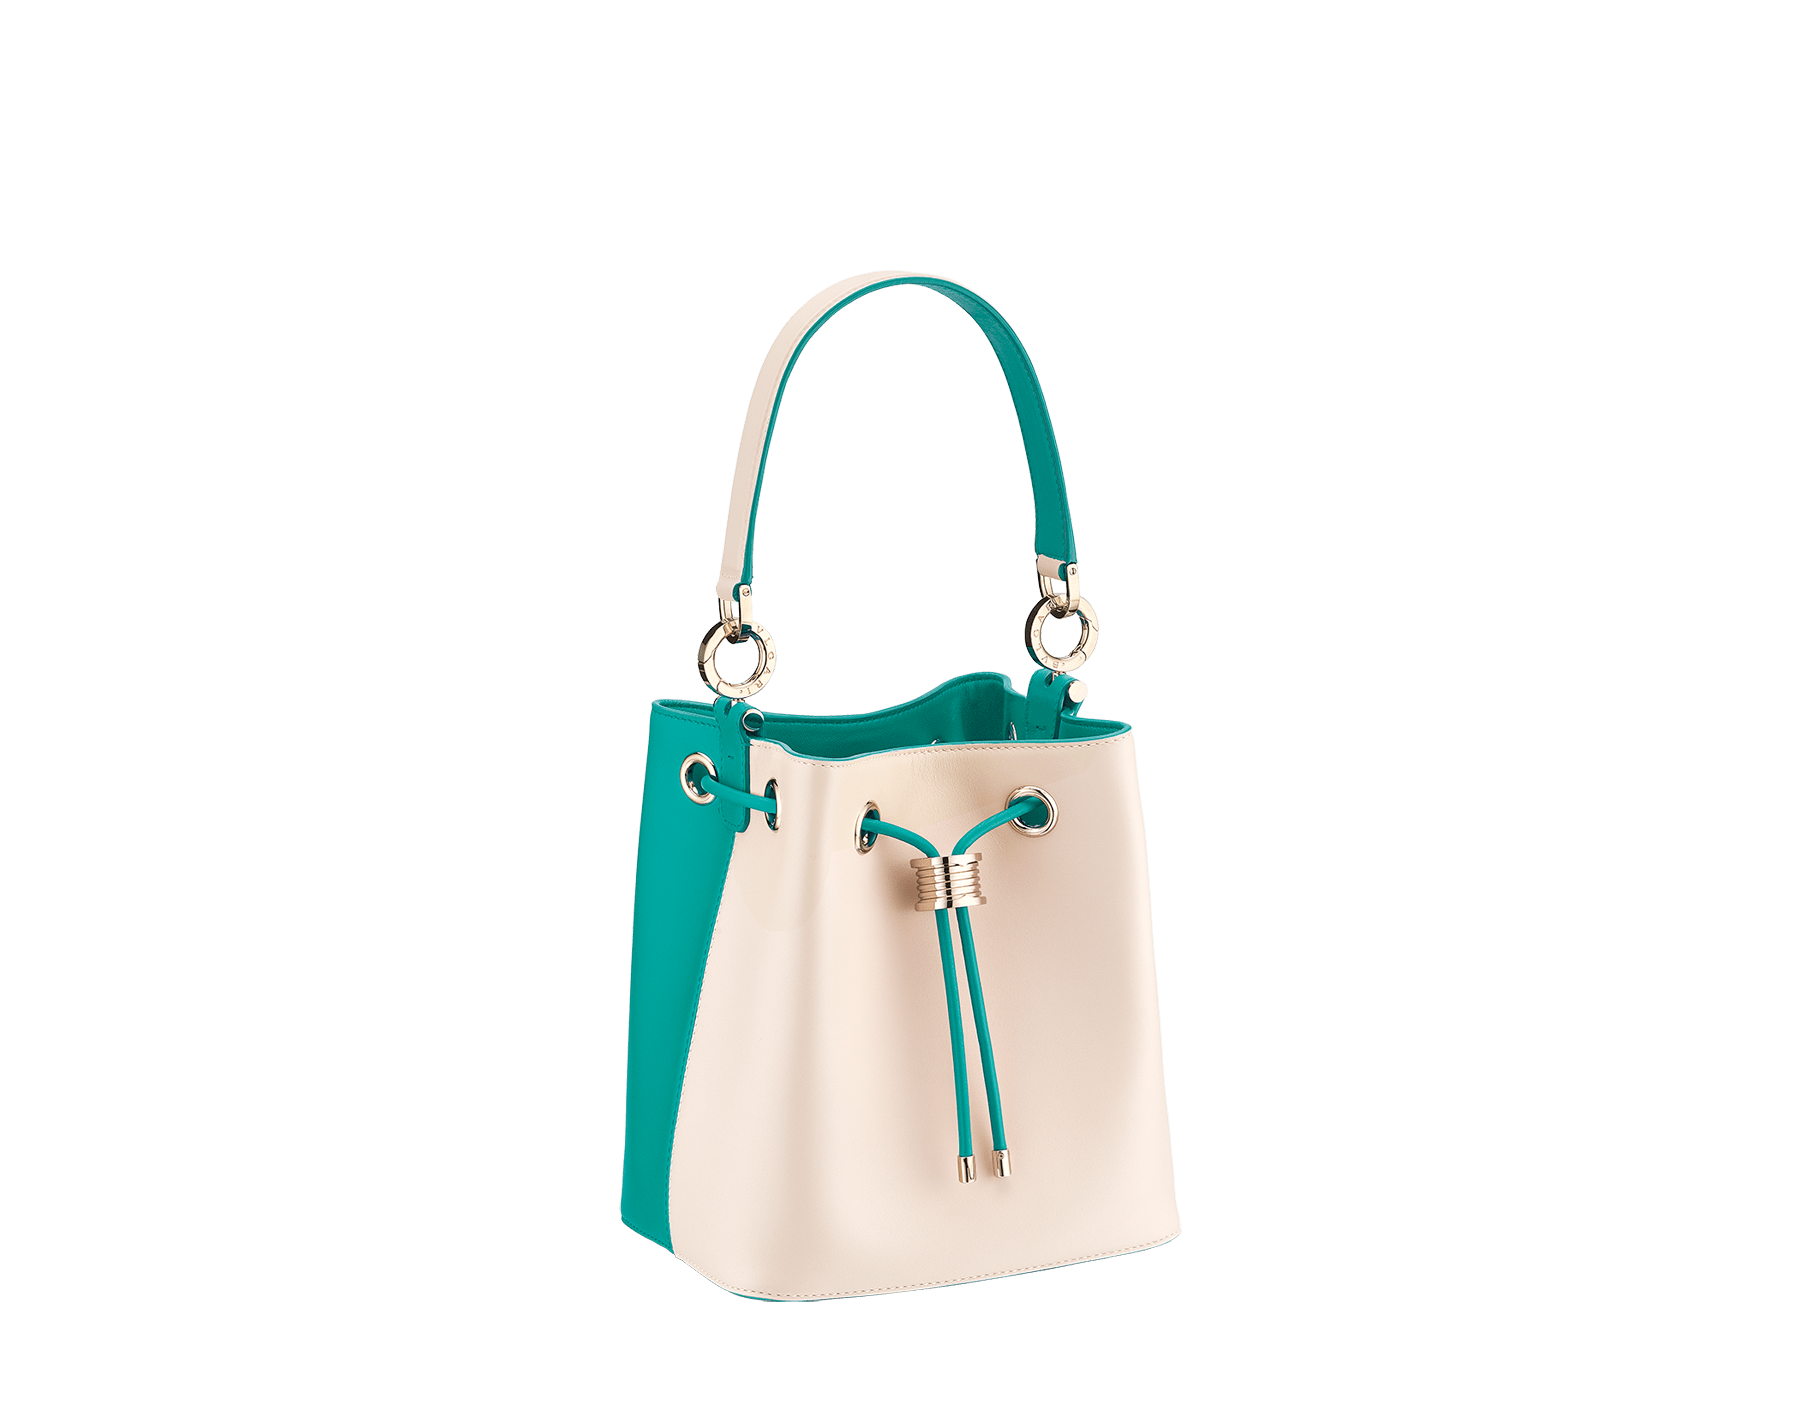 Bucket B.zero1 in milky opal and tropical turquoise smooth calf leather and tropical turquoise nappa lining. Hardware in light gold-plated brass, featuring a B.zero1 décor. 288209 image 2